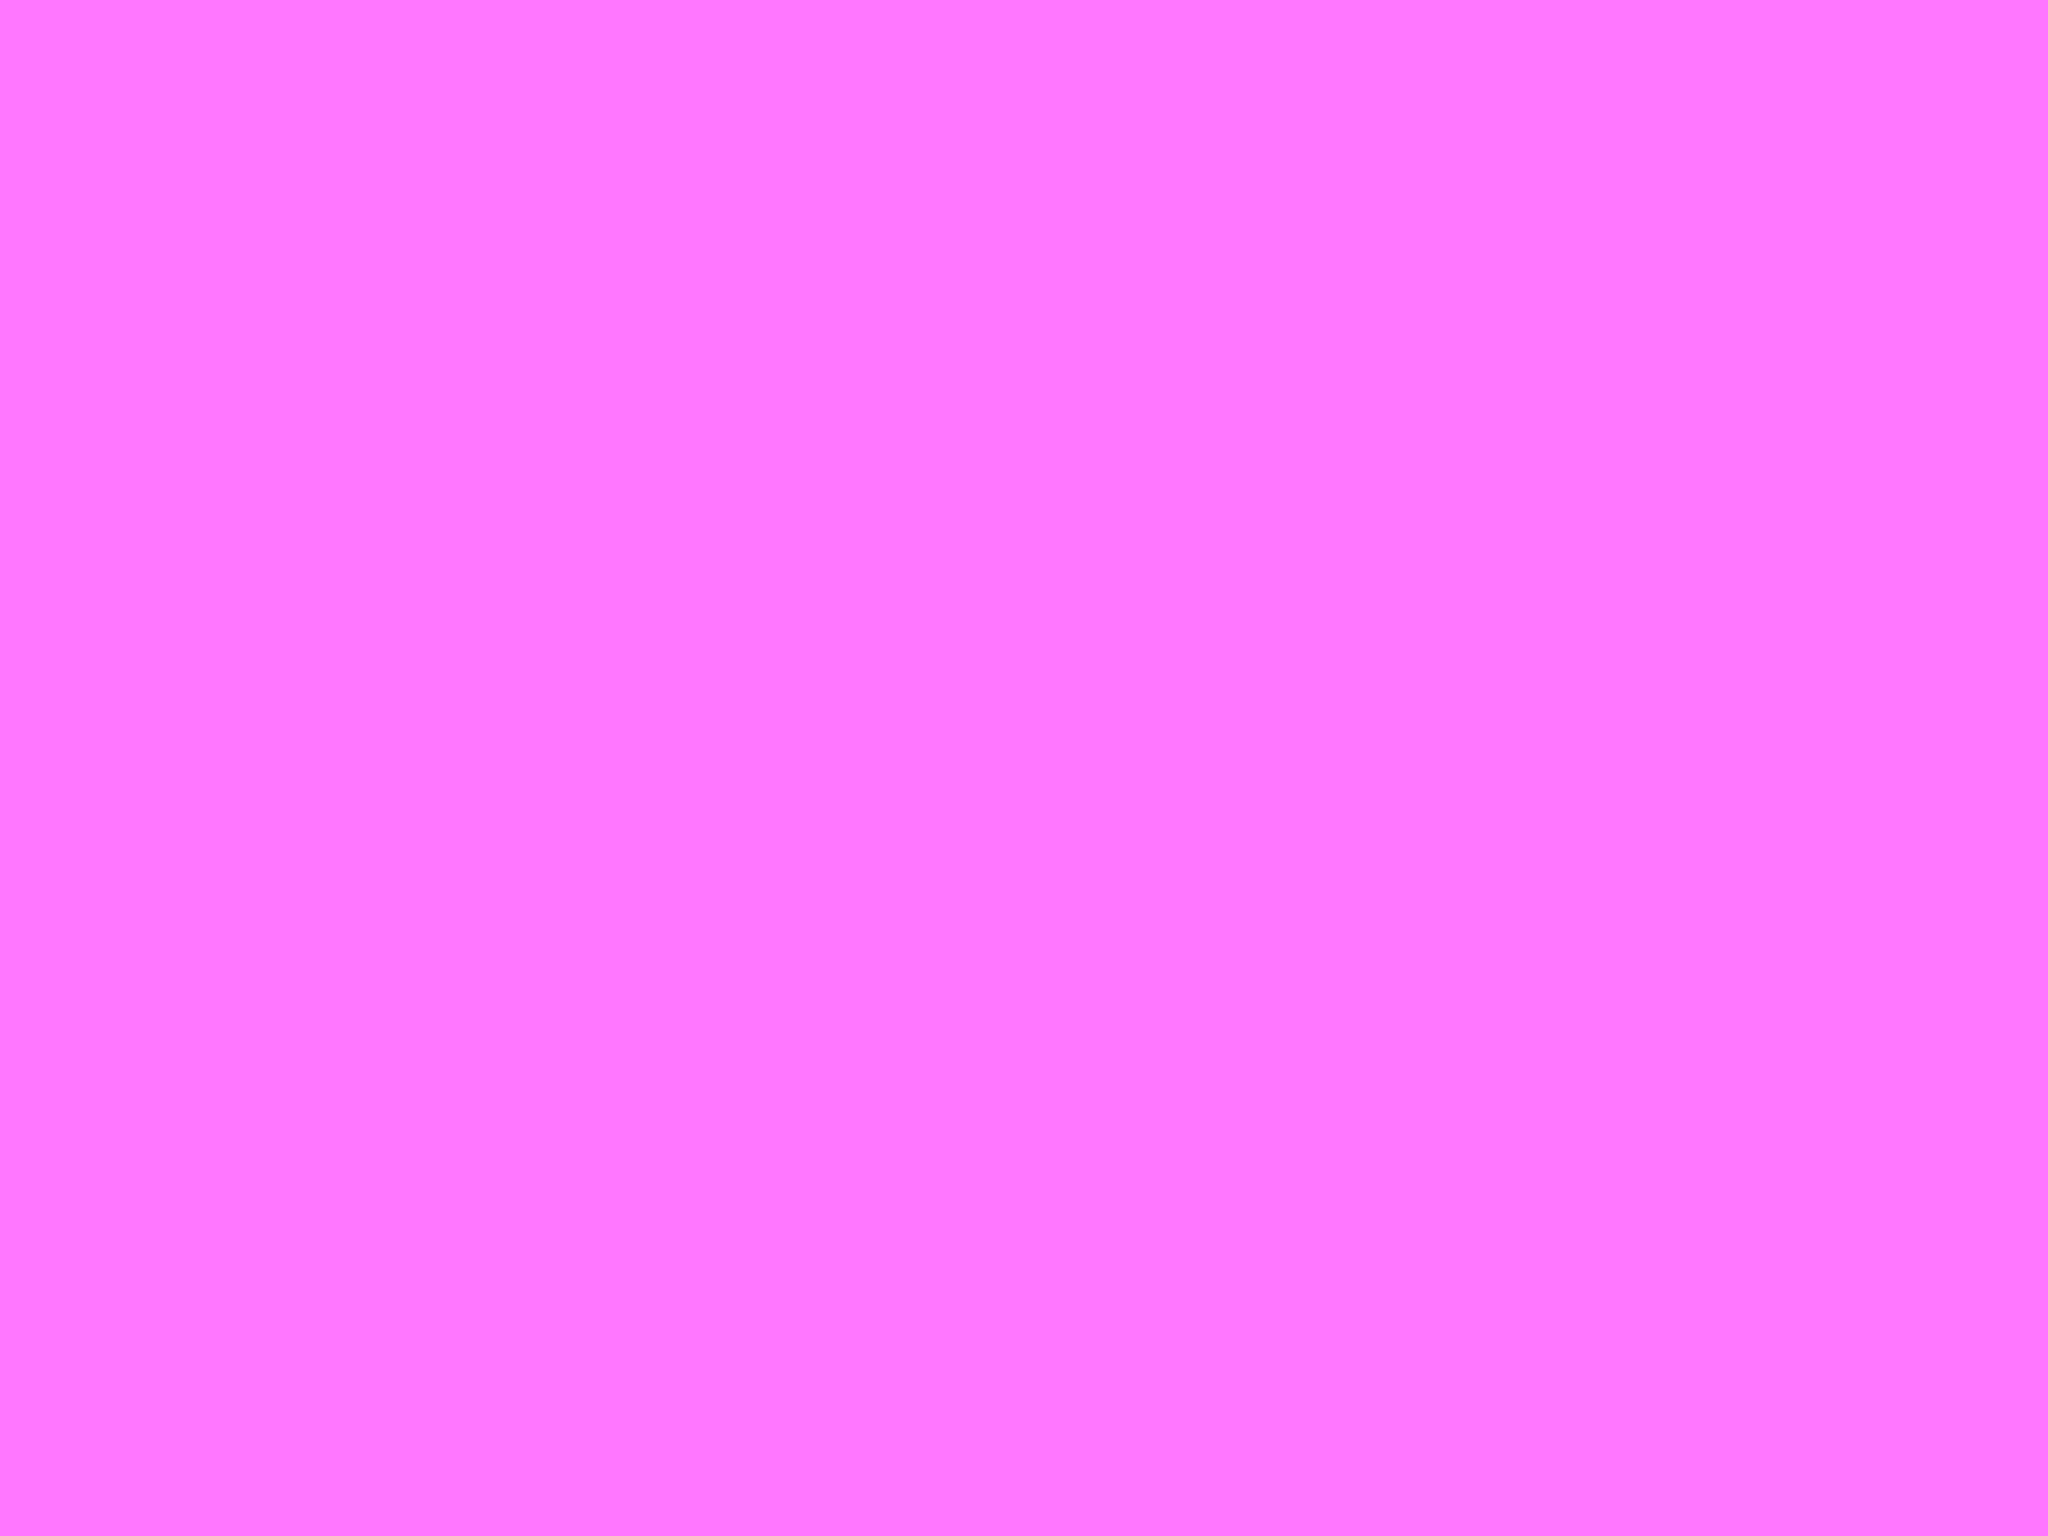 2048x1536 Fuchsia Pink Solid Color Background